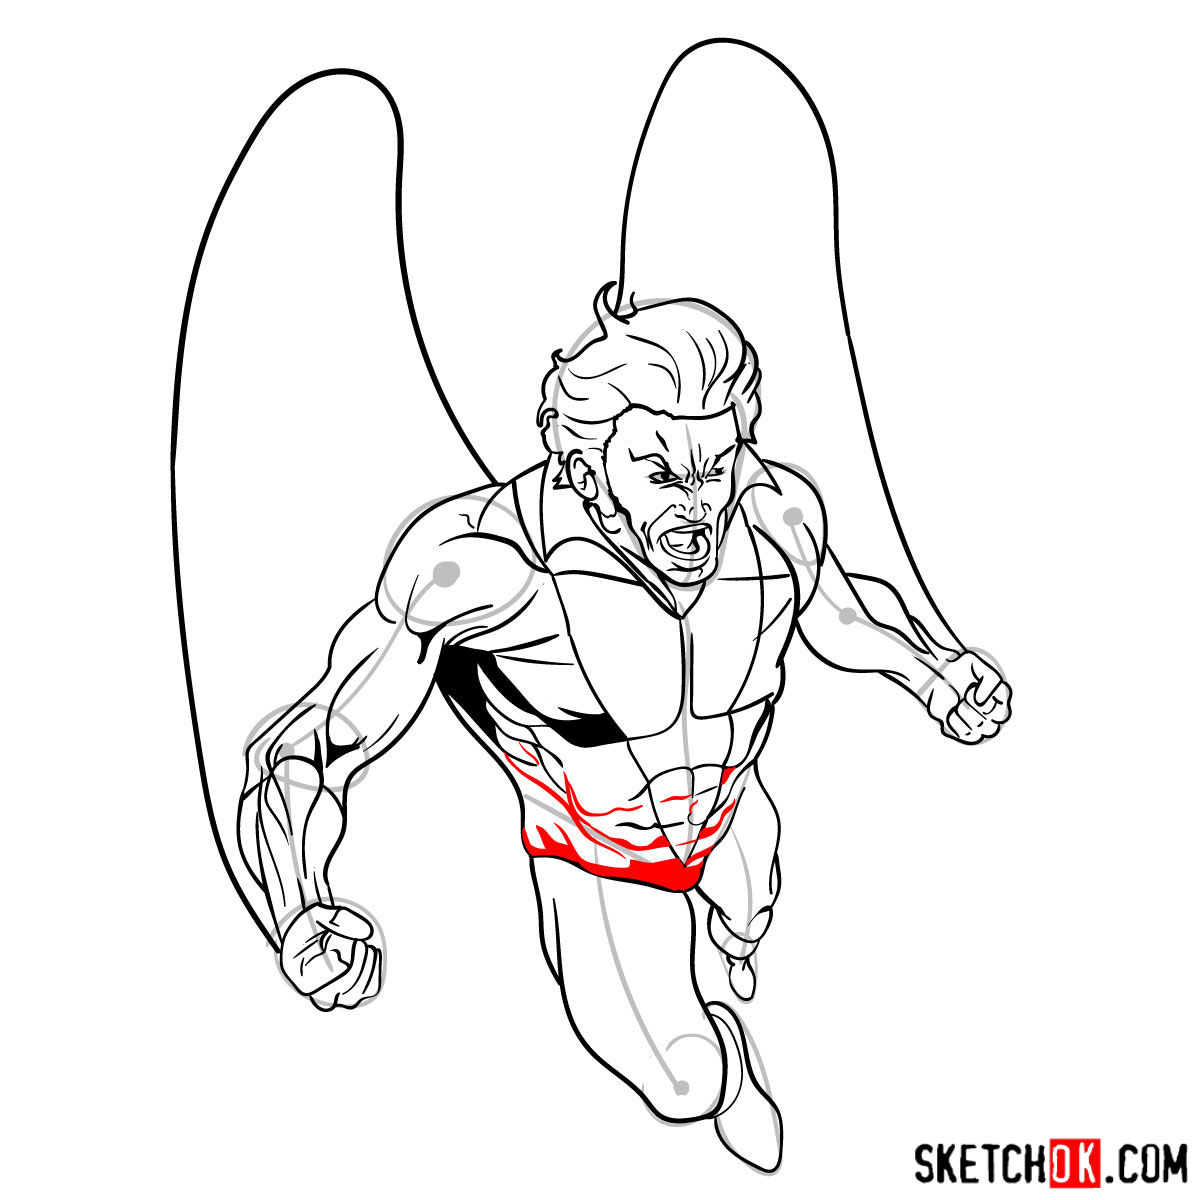 How to draw Banshee mutant from X-Men - step 15